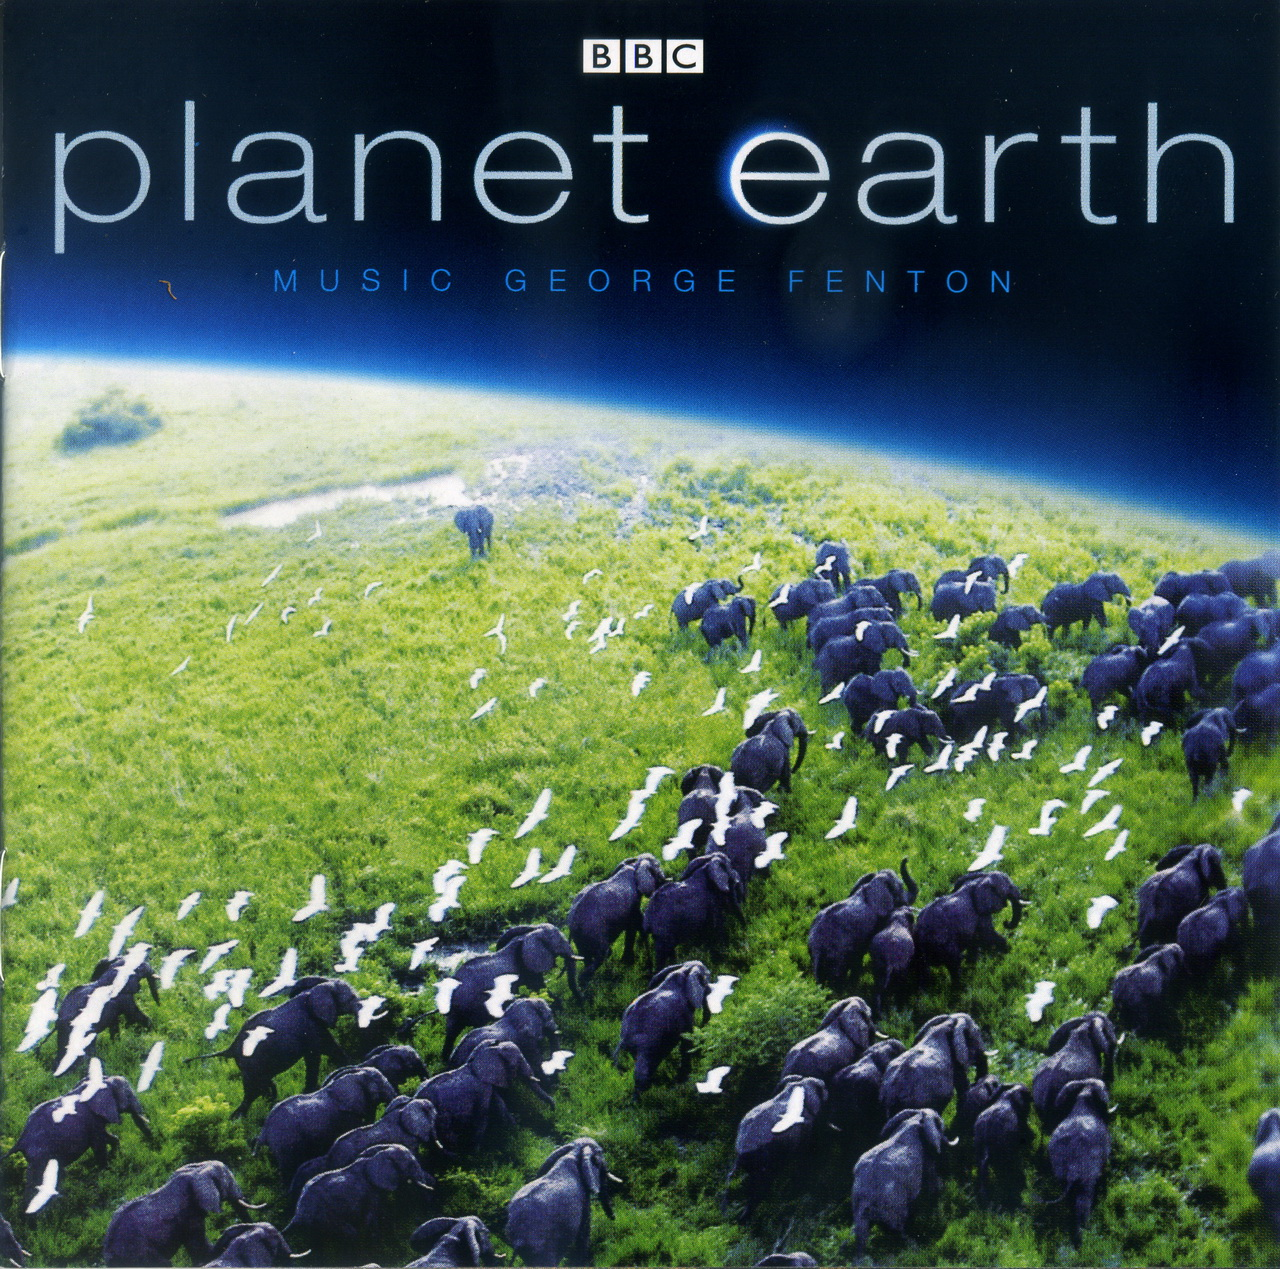 Planet Earth (TV series) - Wikipedia